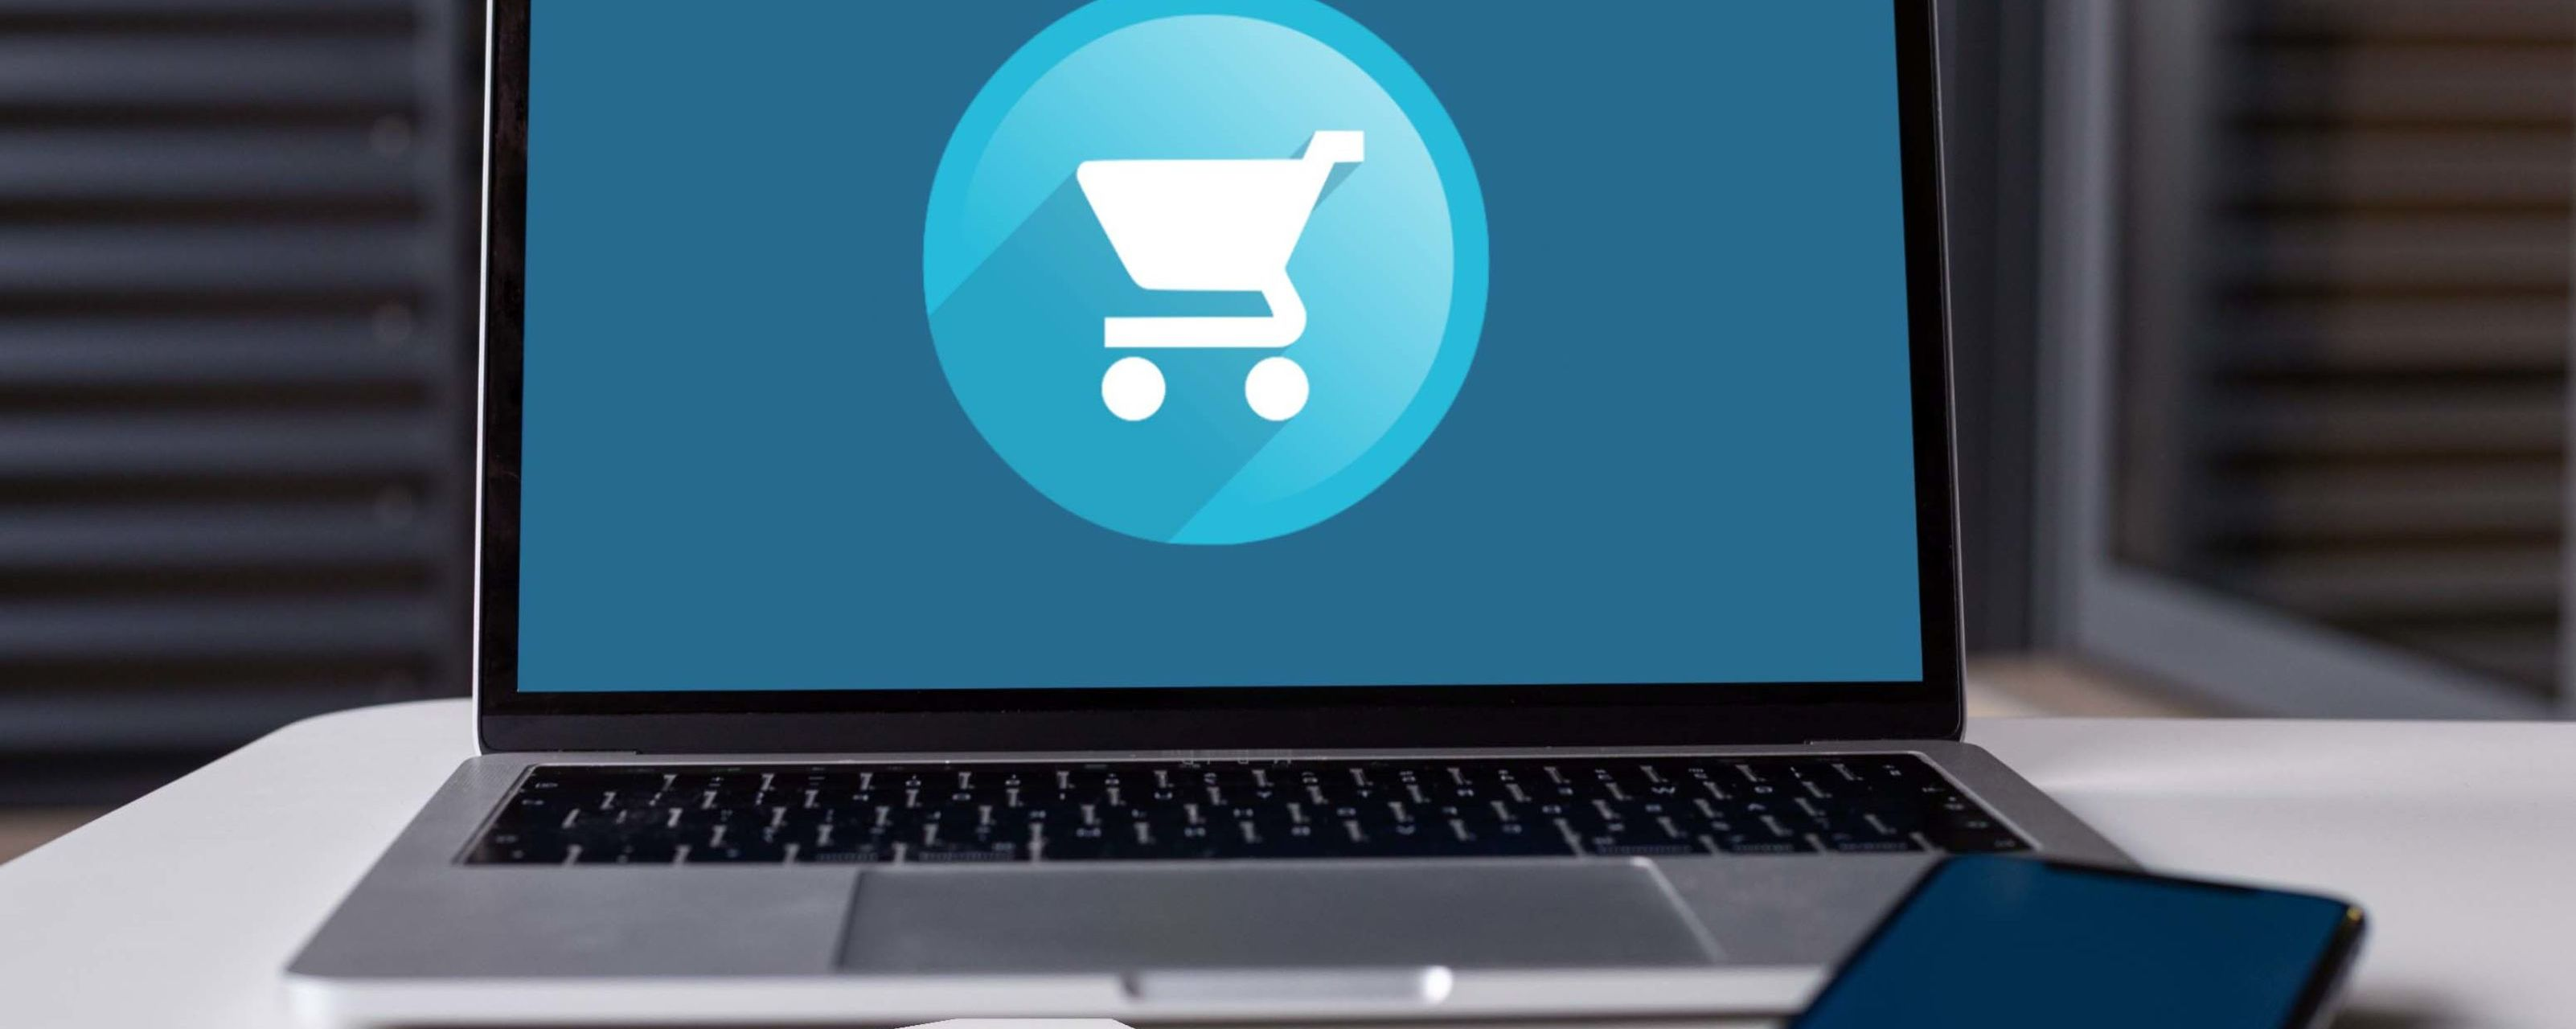 European Ecommerce Hits Record High